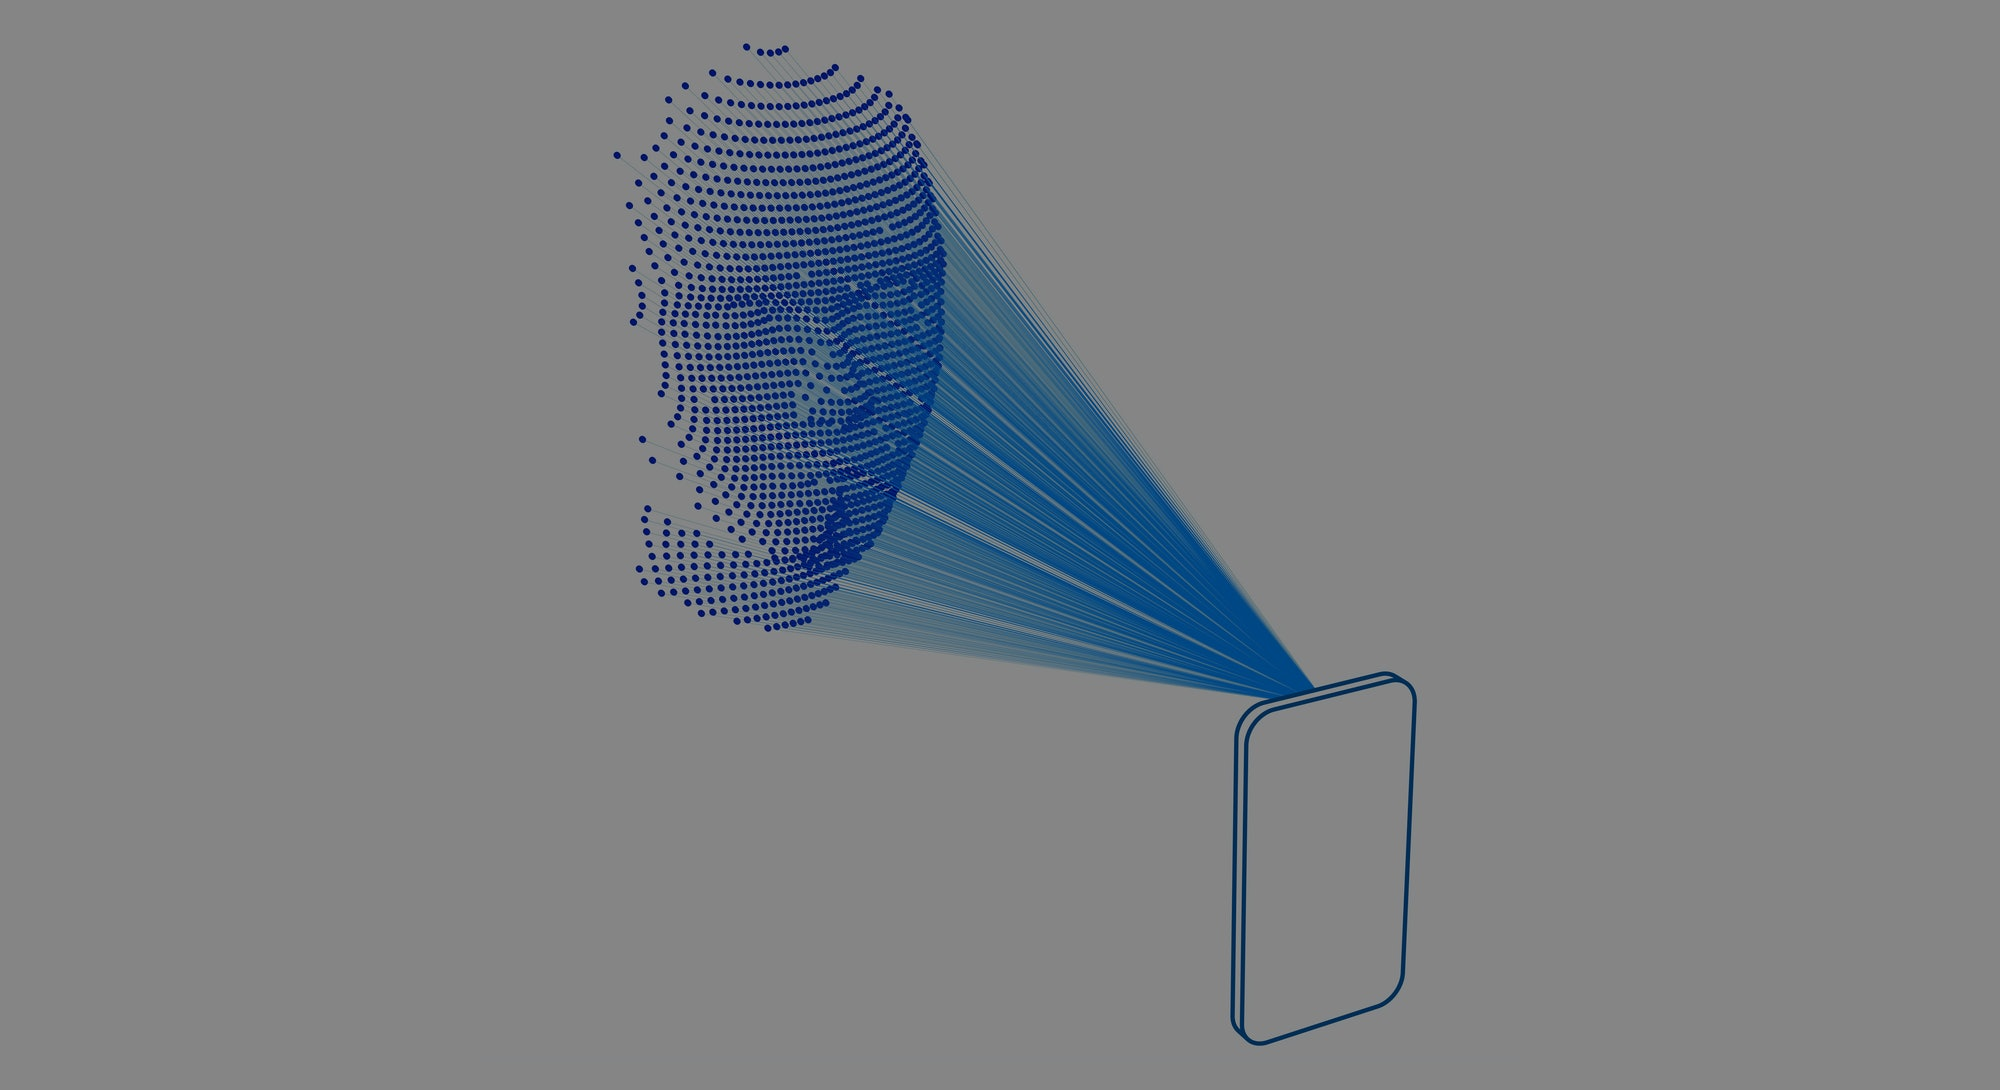 Facial recognition using lasers